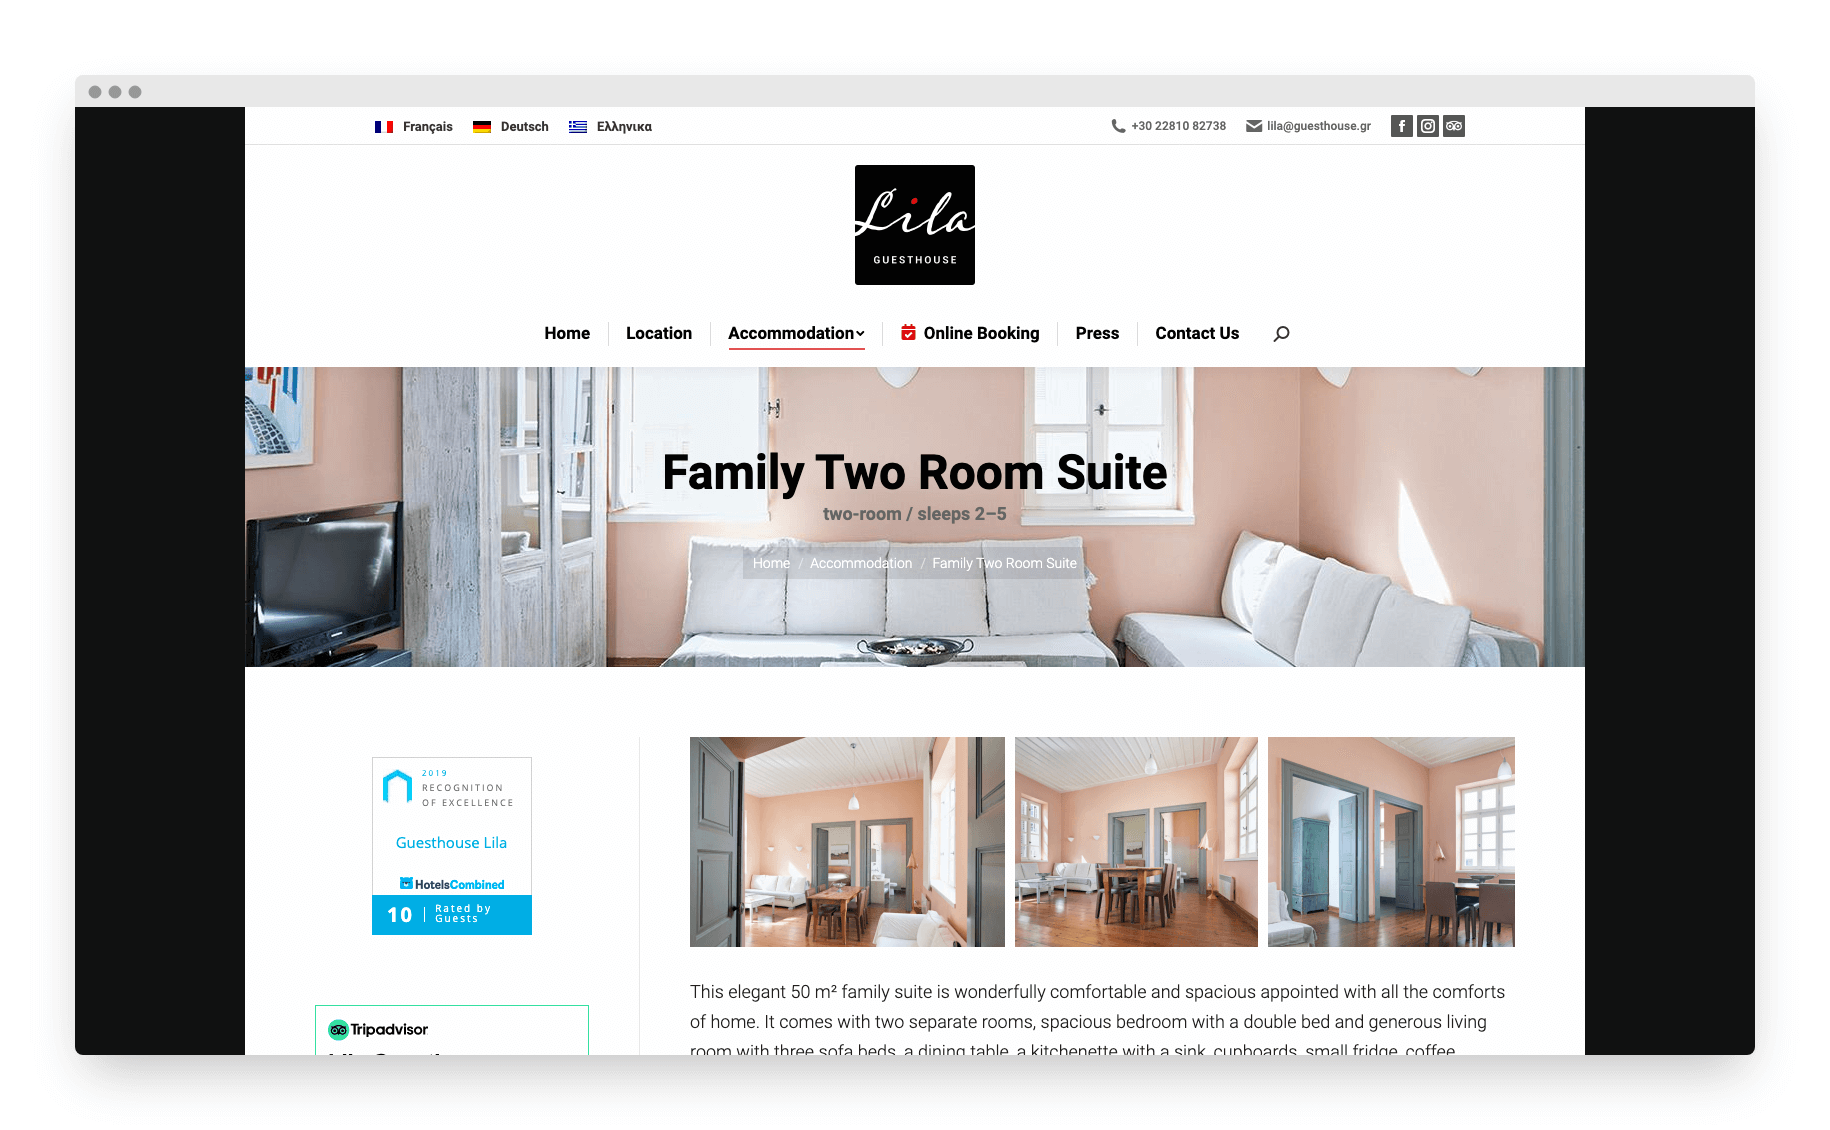 Lila Guesthouse Website 9